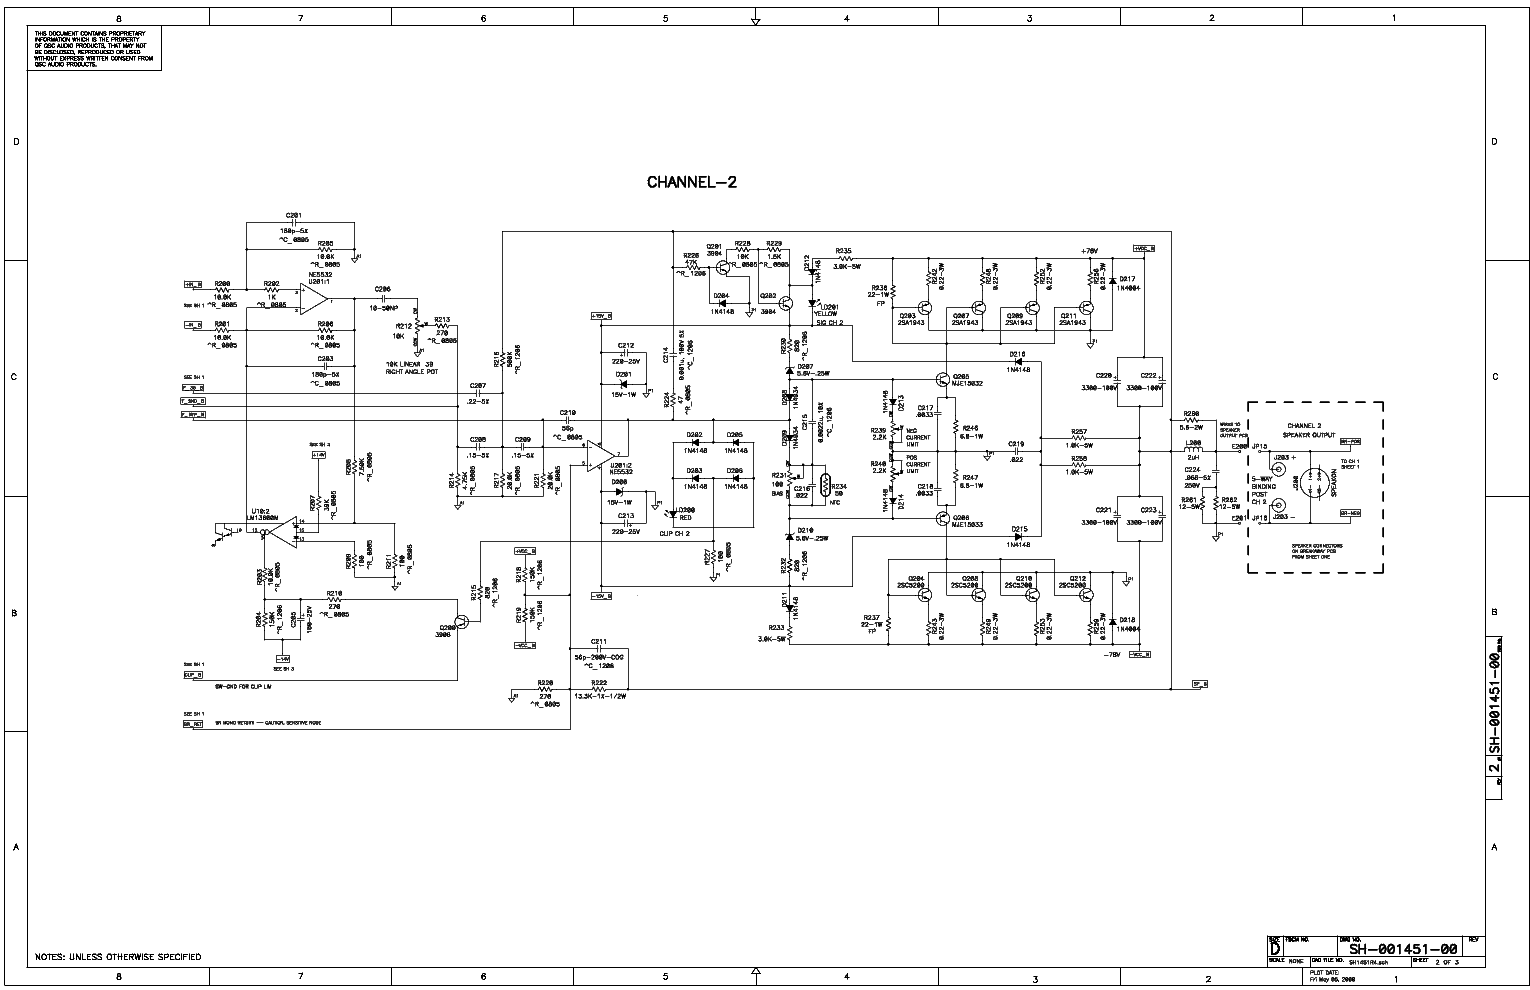 QSC RMX1450 service manual (2nd page)